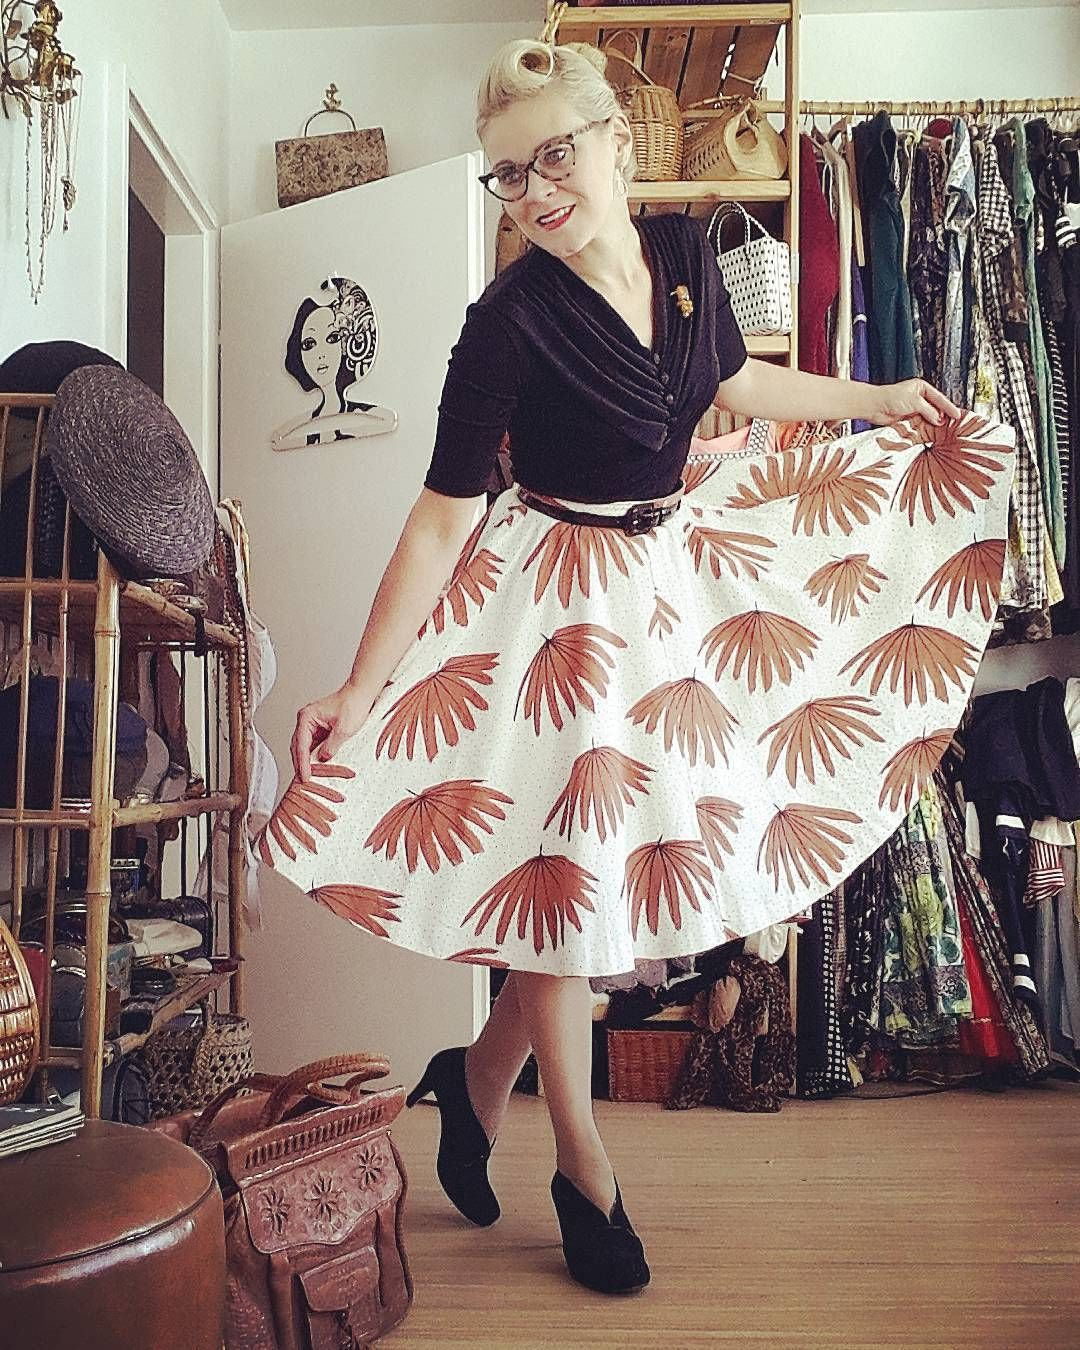 """Outfitoftheday. Wearing  vintage top and a #50s circle skirt. #ootdsocialclub #truevintageootd #officedress #daydress #50s #petticoat #vintagehairstyle…"""